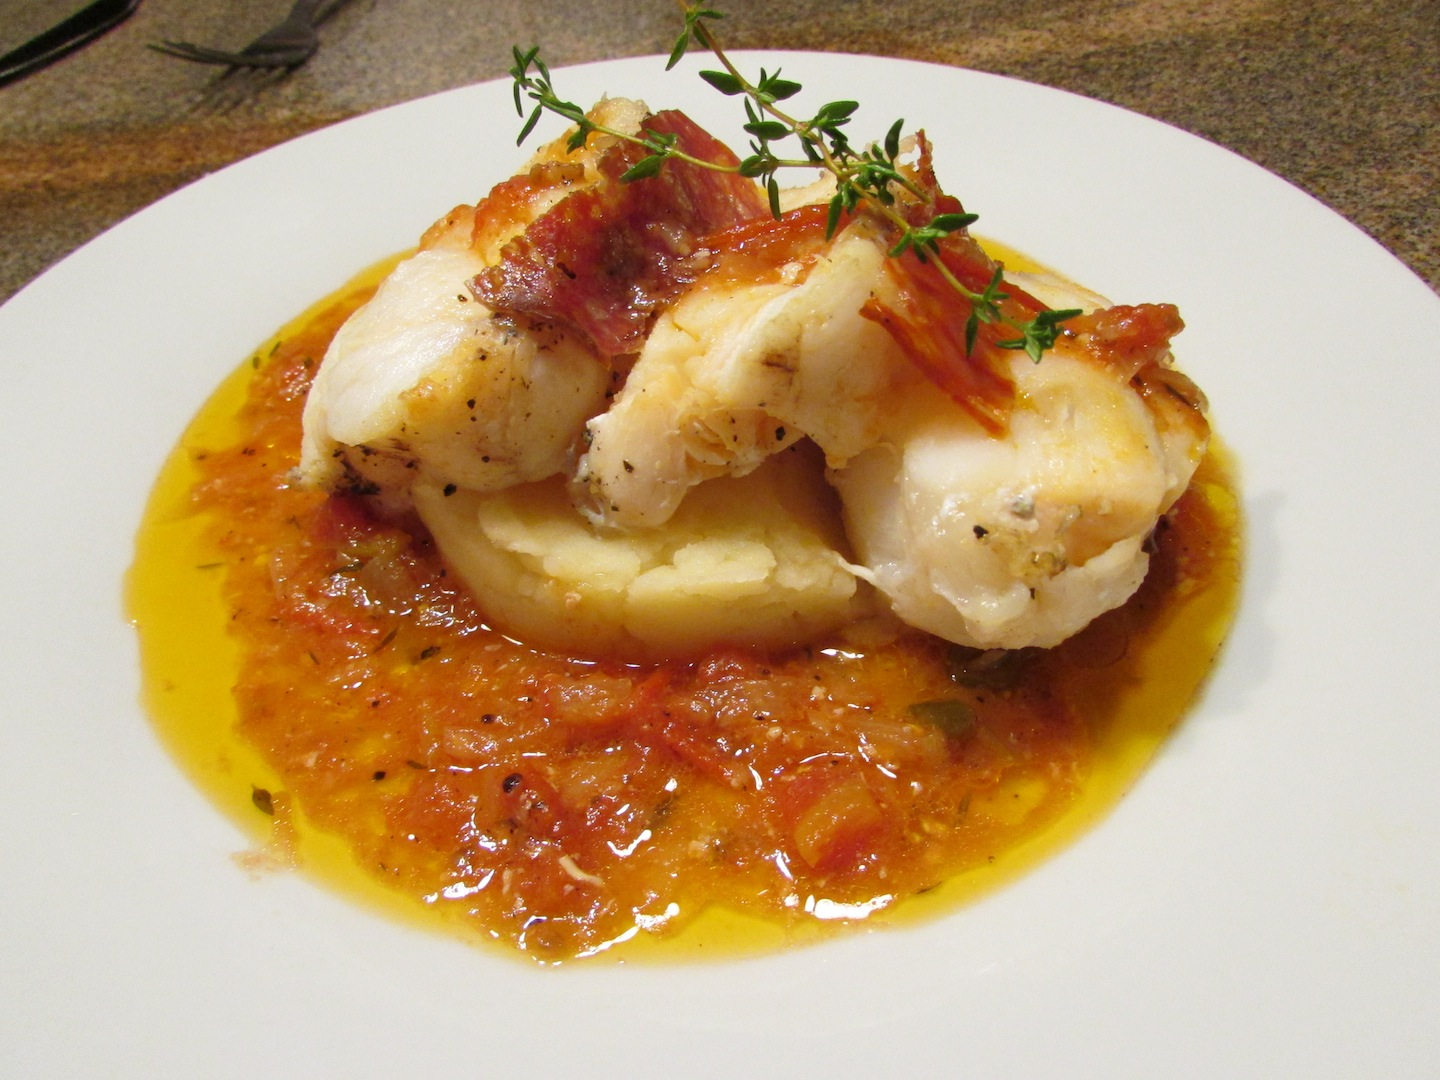 Food archives dr cindy lifestyle for Garlic sauce for fish